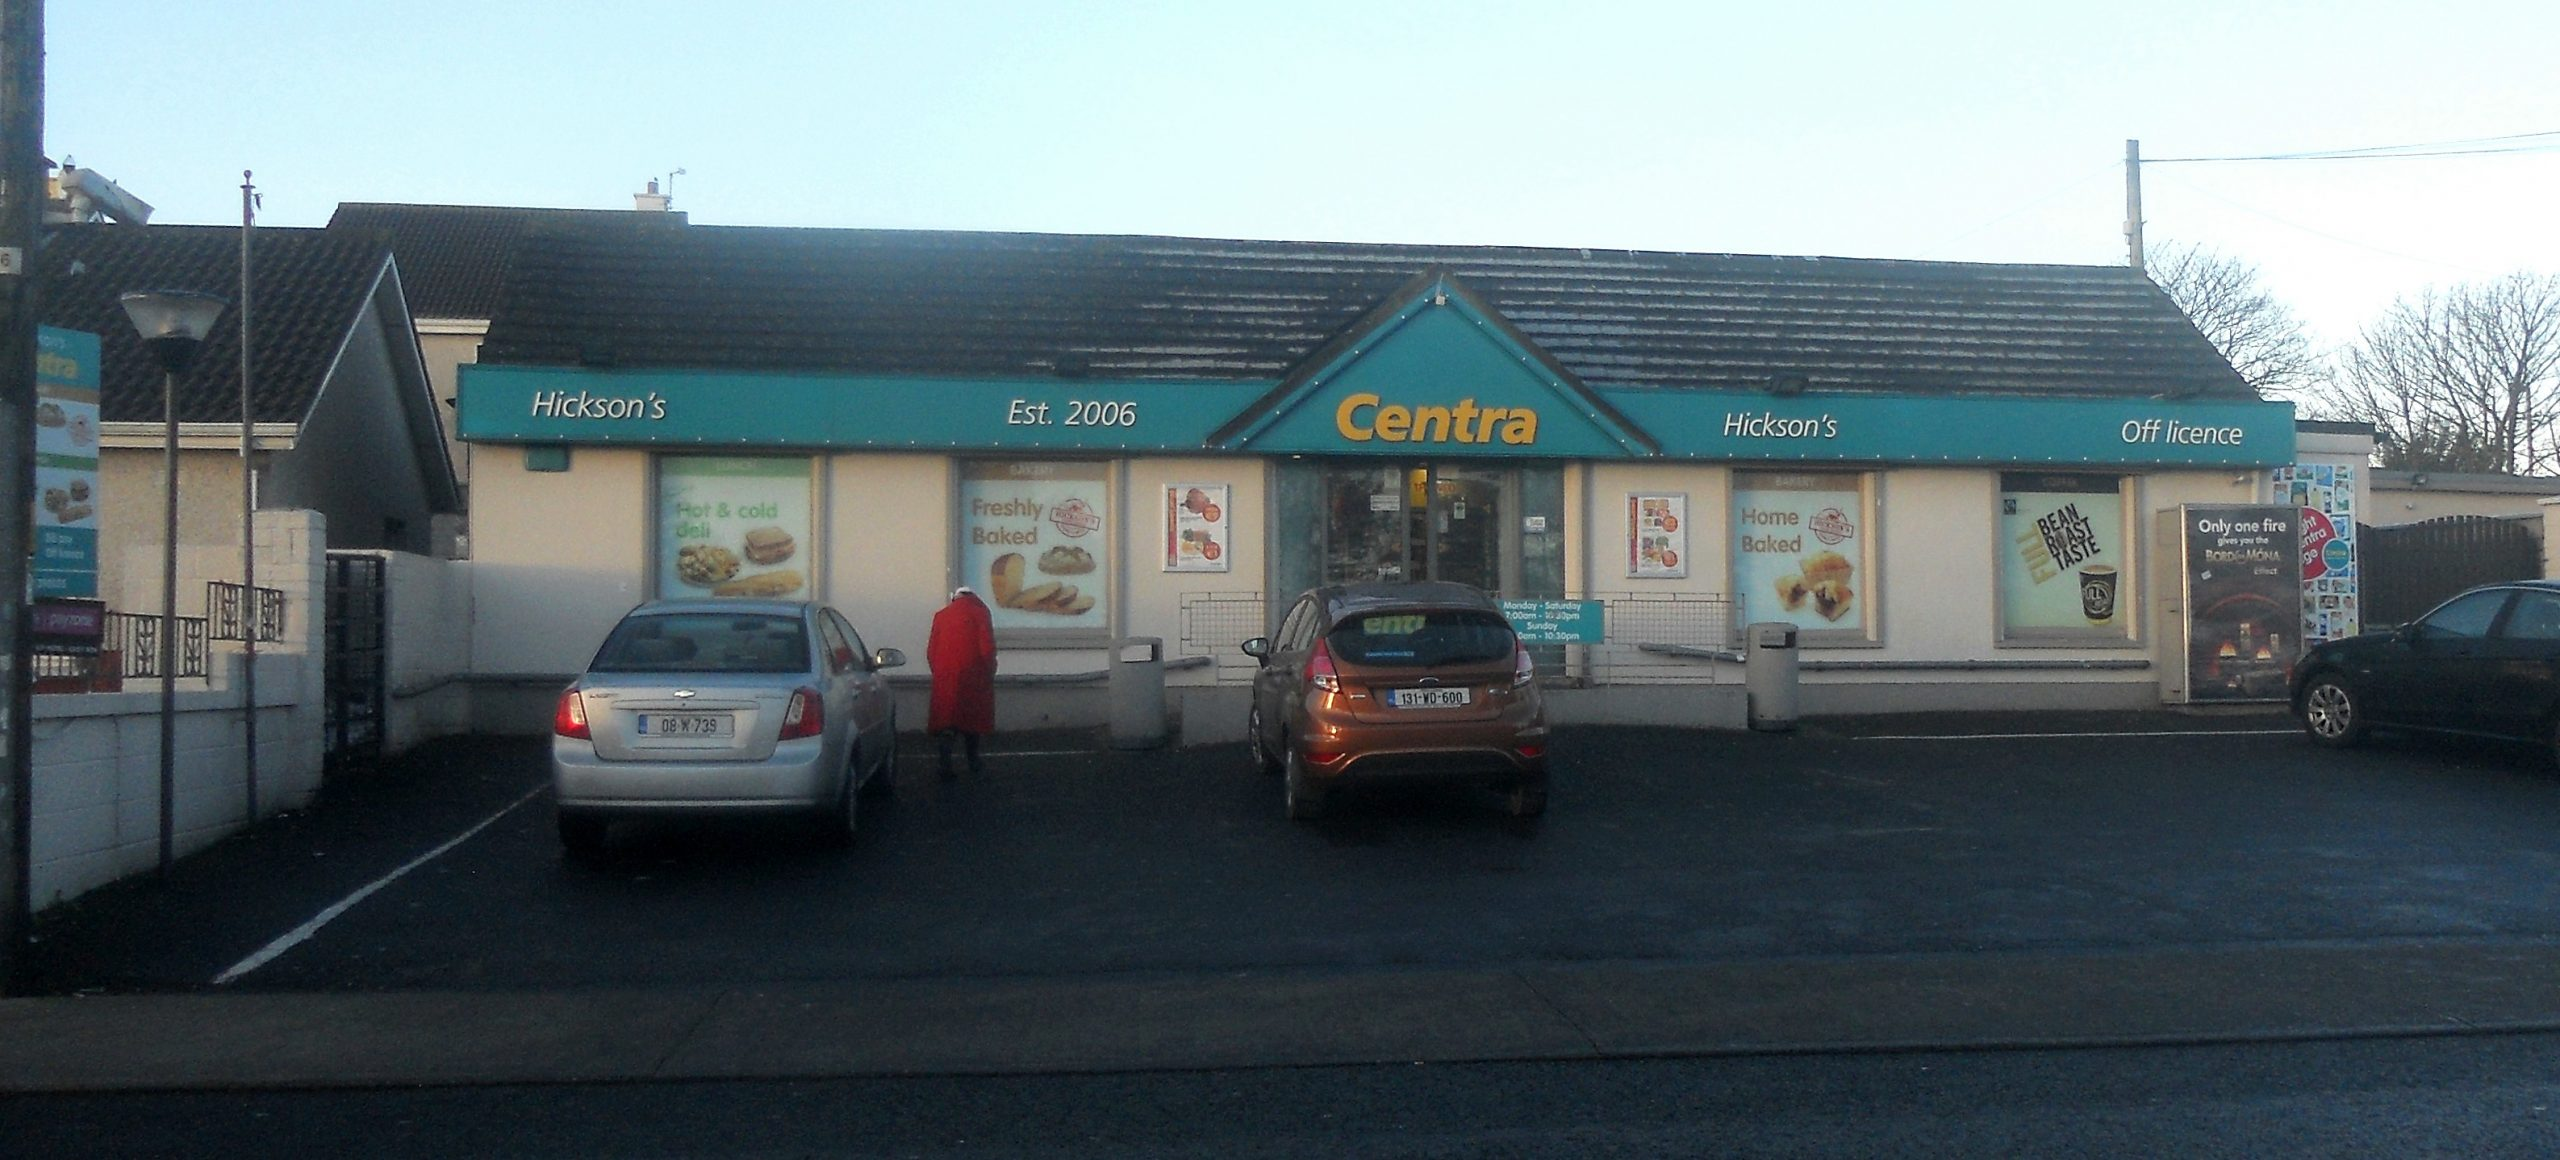 Hickson's Centra Tramore praised for child safety initiative